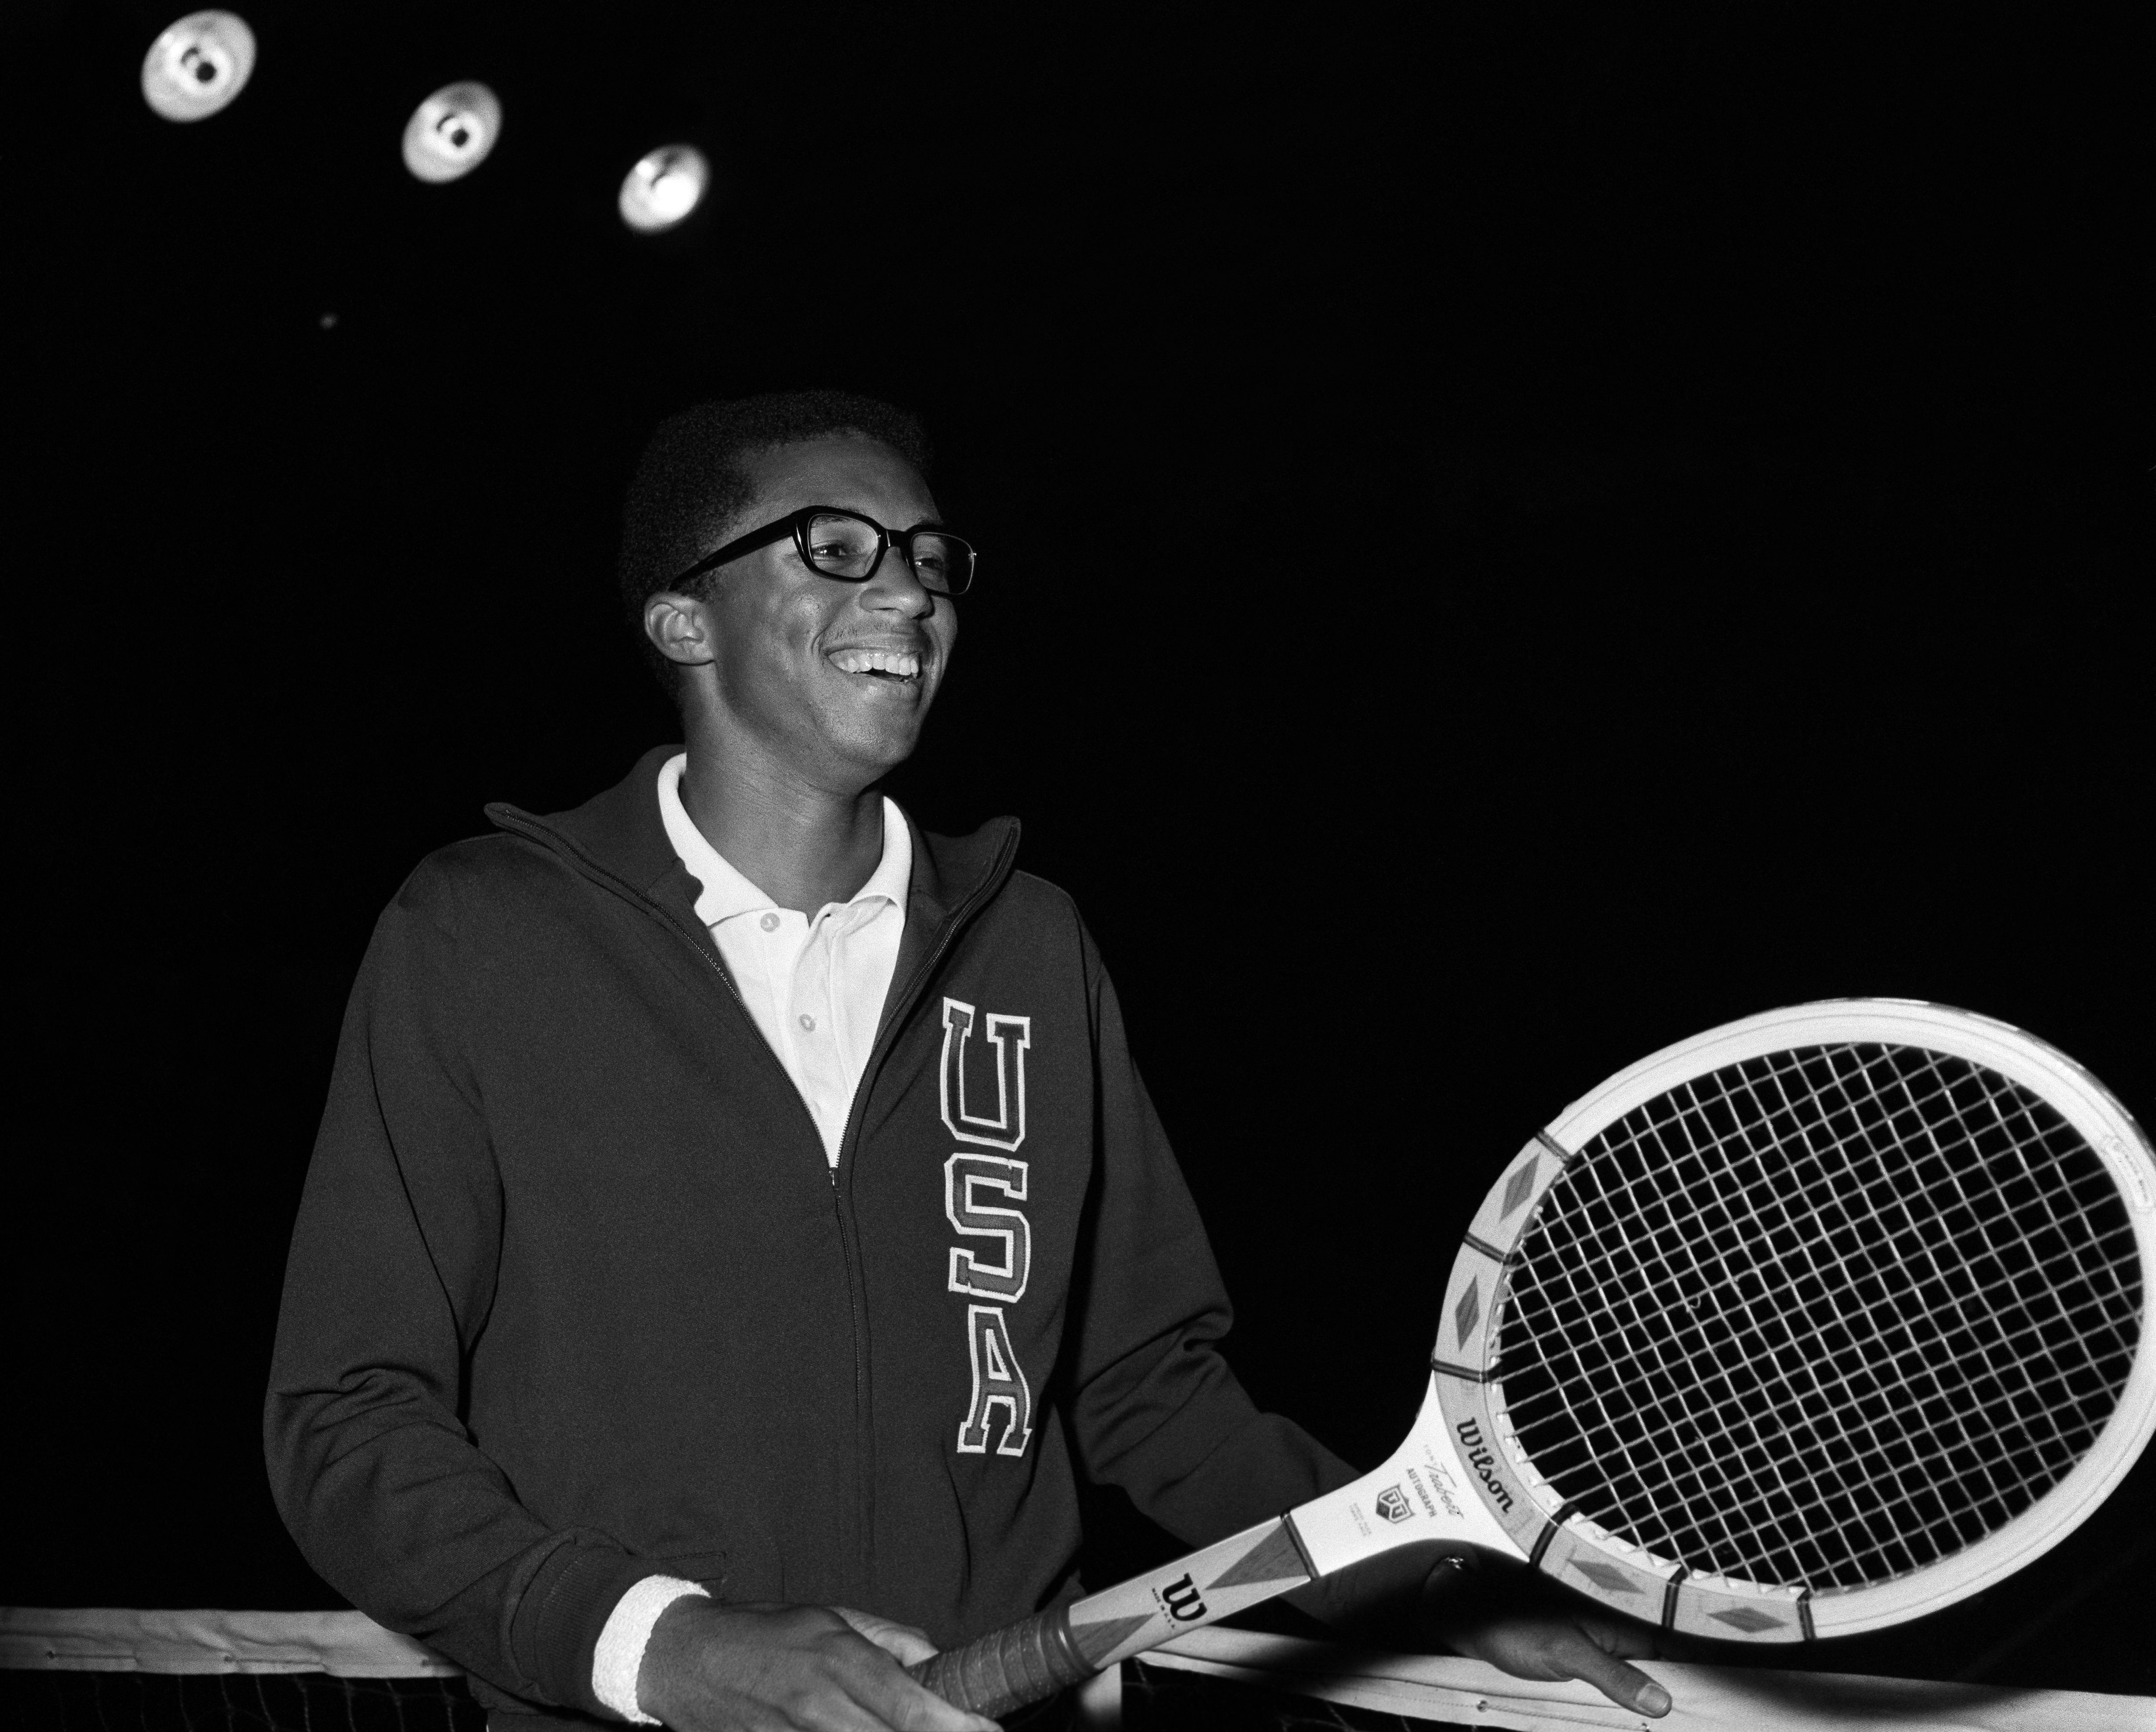 Tennis player Arthur Ashe